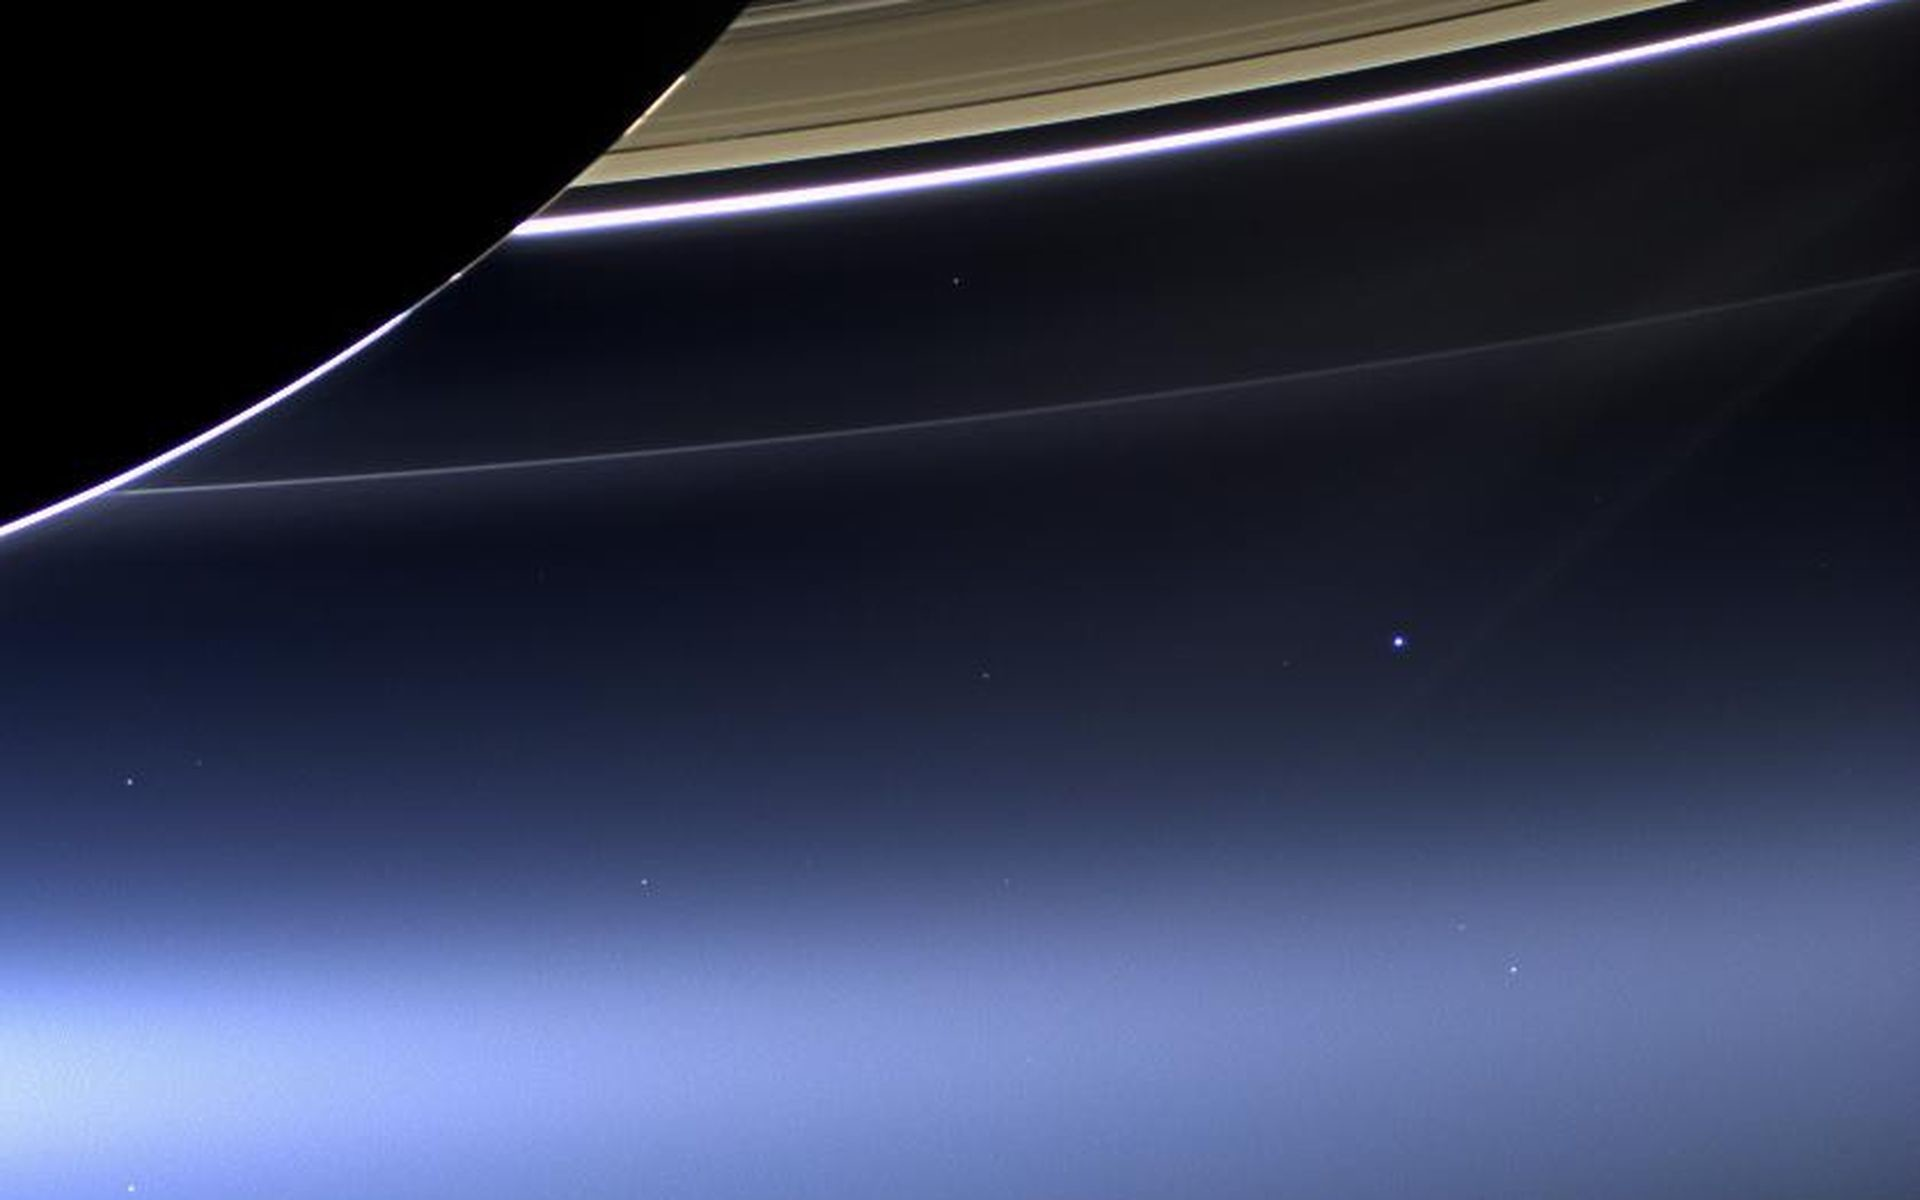 In this rare image taken on July 19, 2013, the wide-angle camera